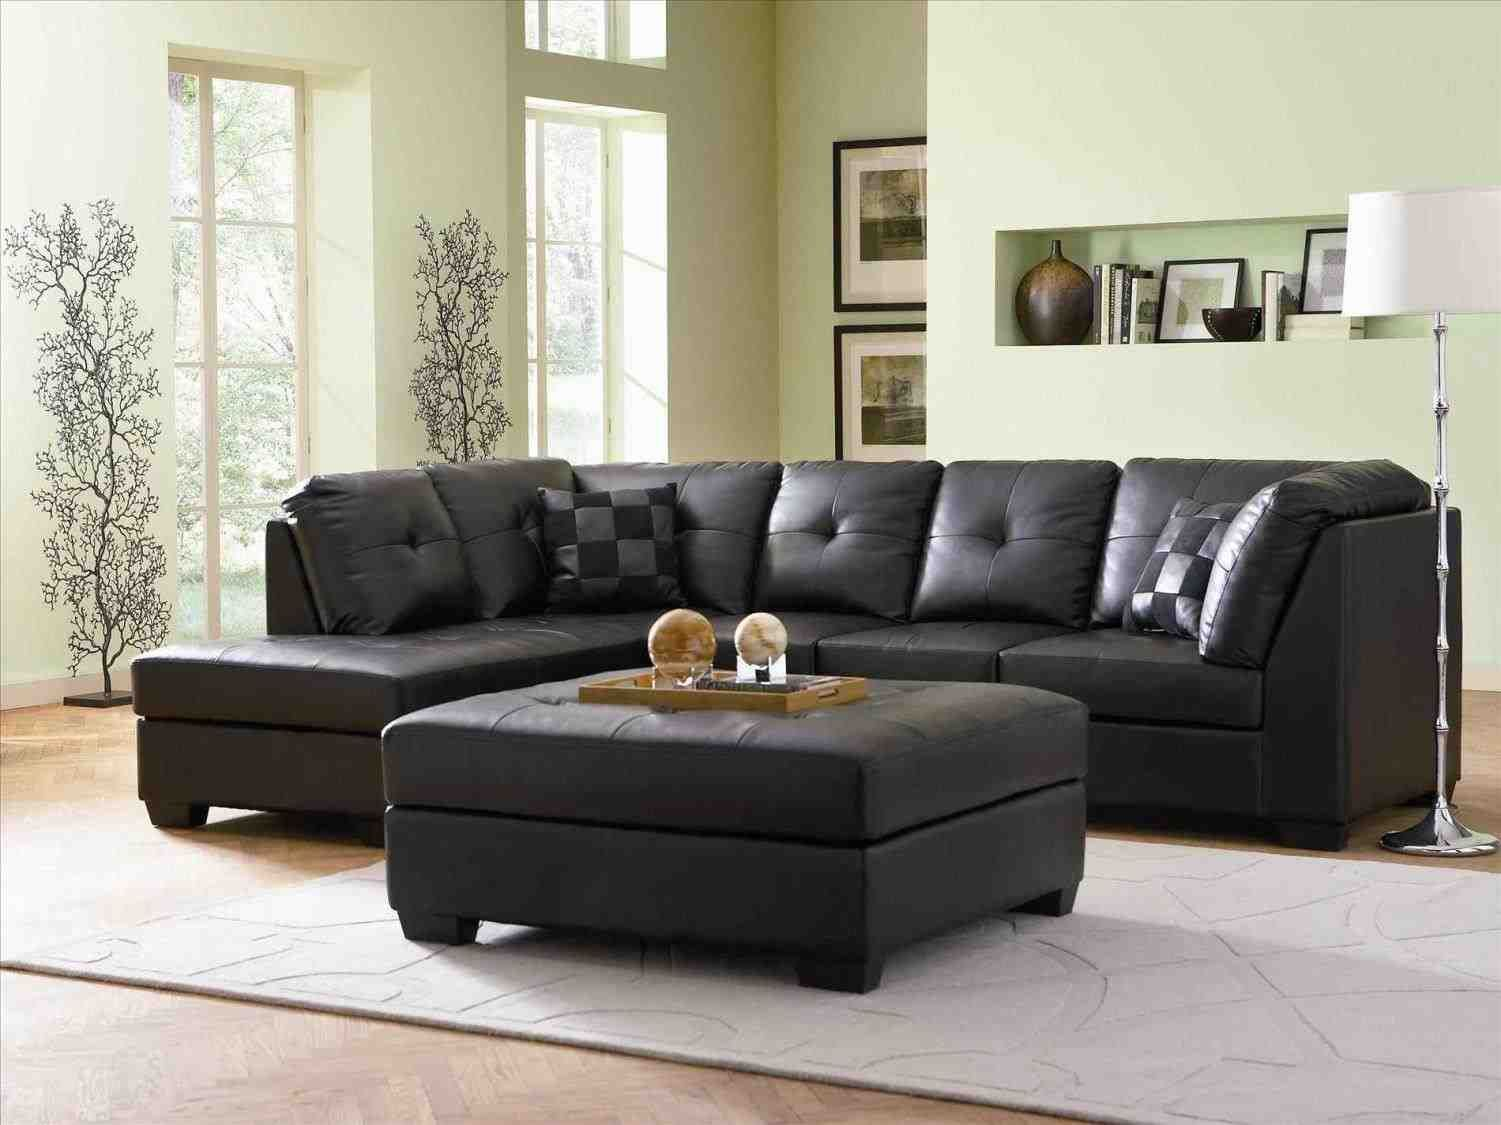 Cheap Leather Sofas Glasgow Brown Leatherofas Dark Brownrofa Literarywondrous Photo Concept Decora Best Leather Sofa Leather Sectional Sofa Leather Sofa Set